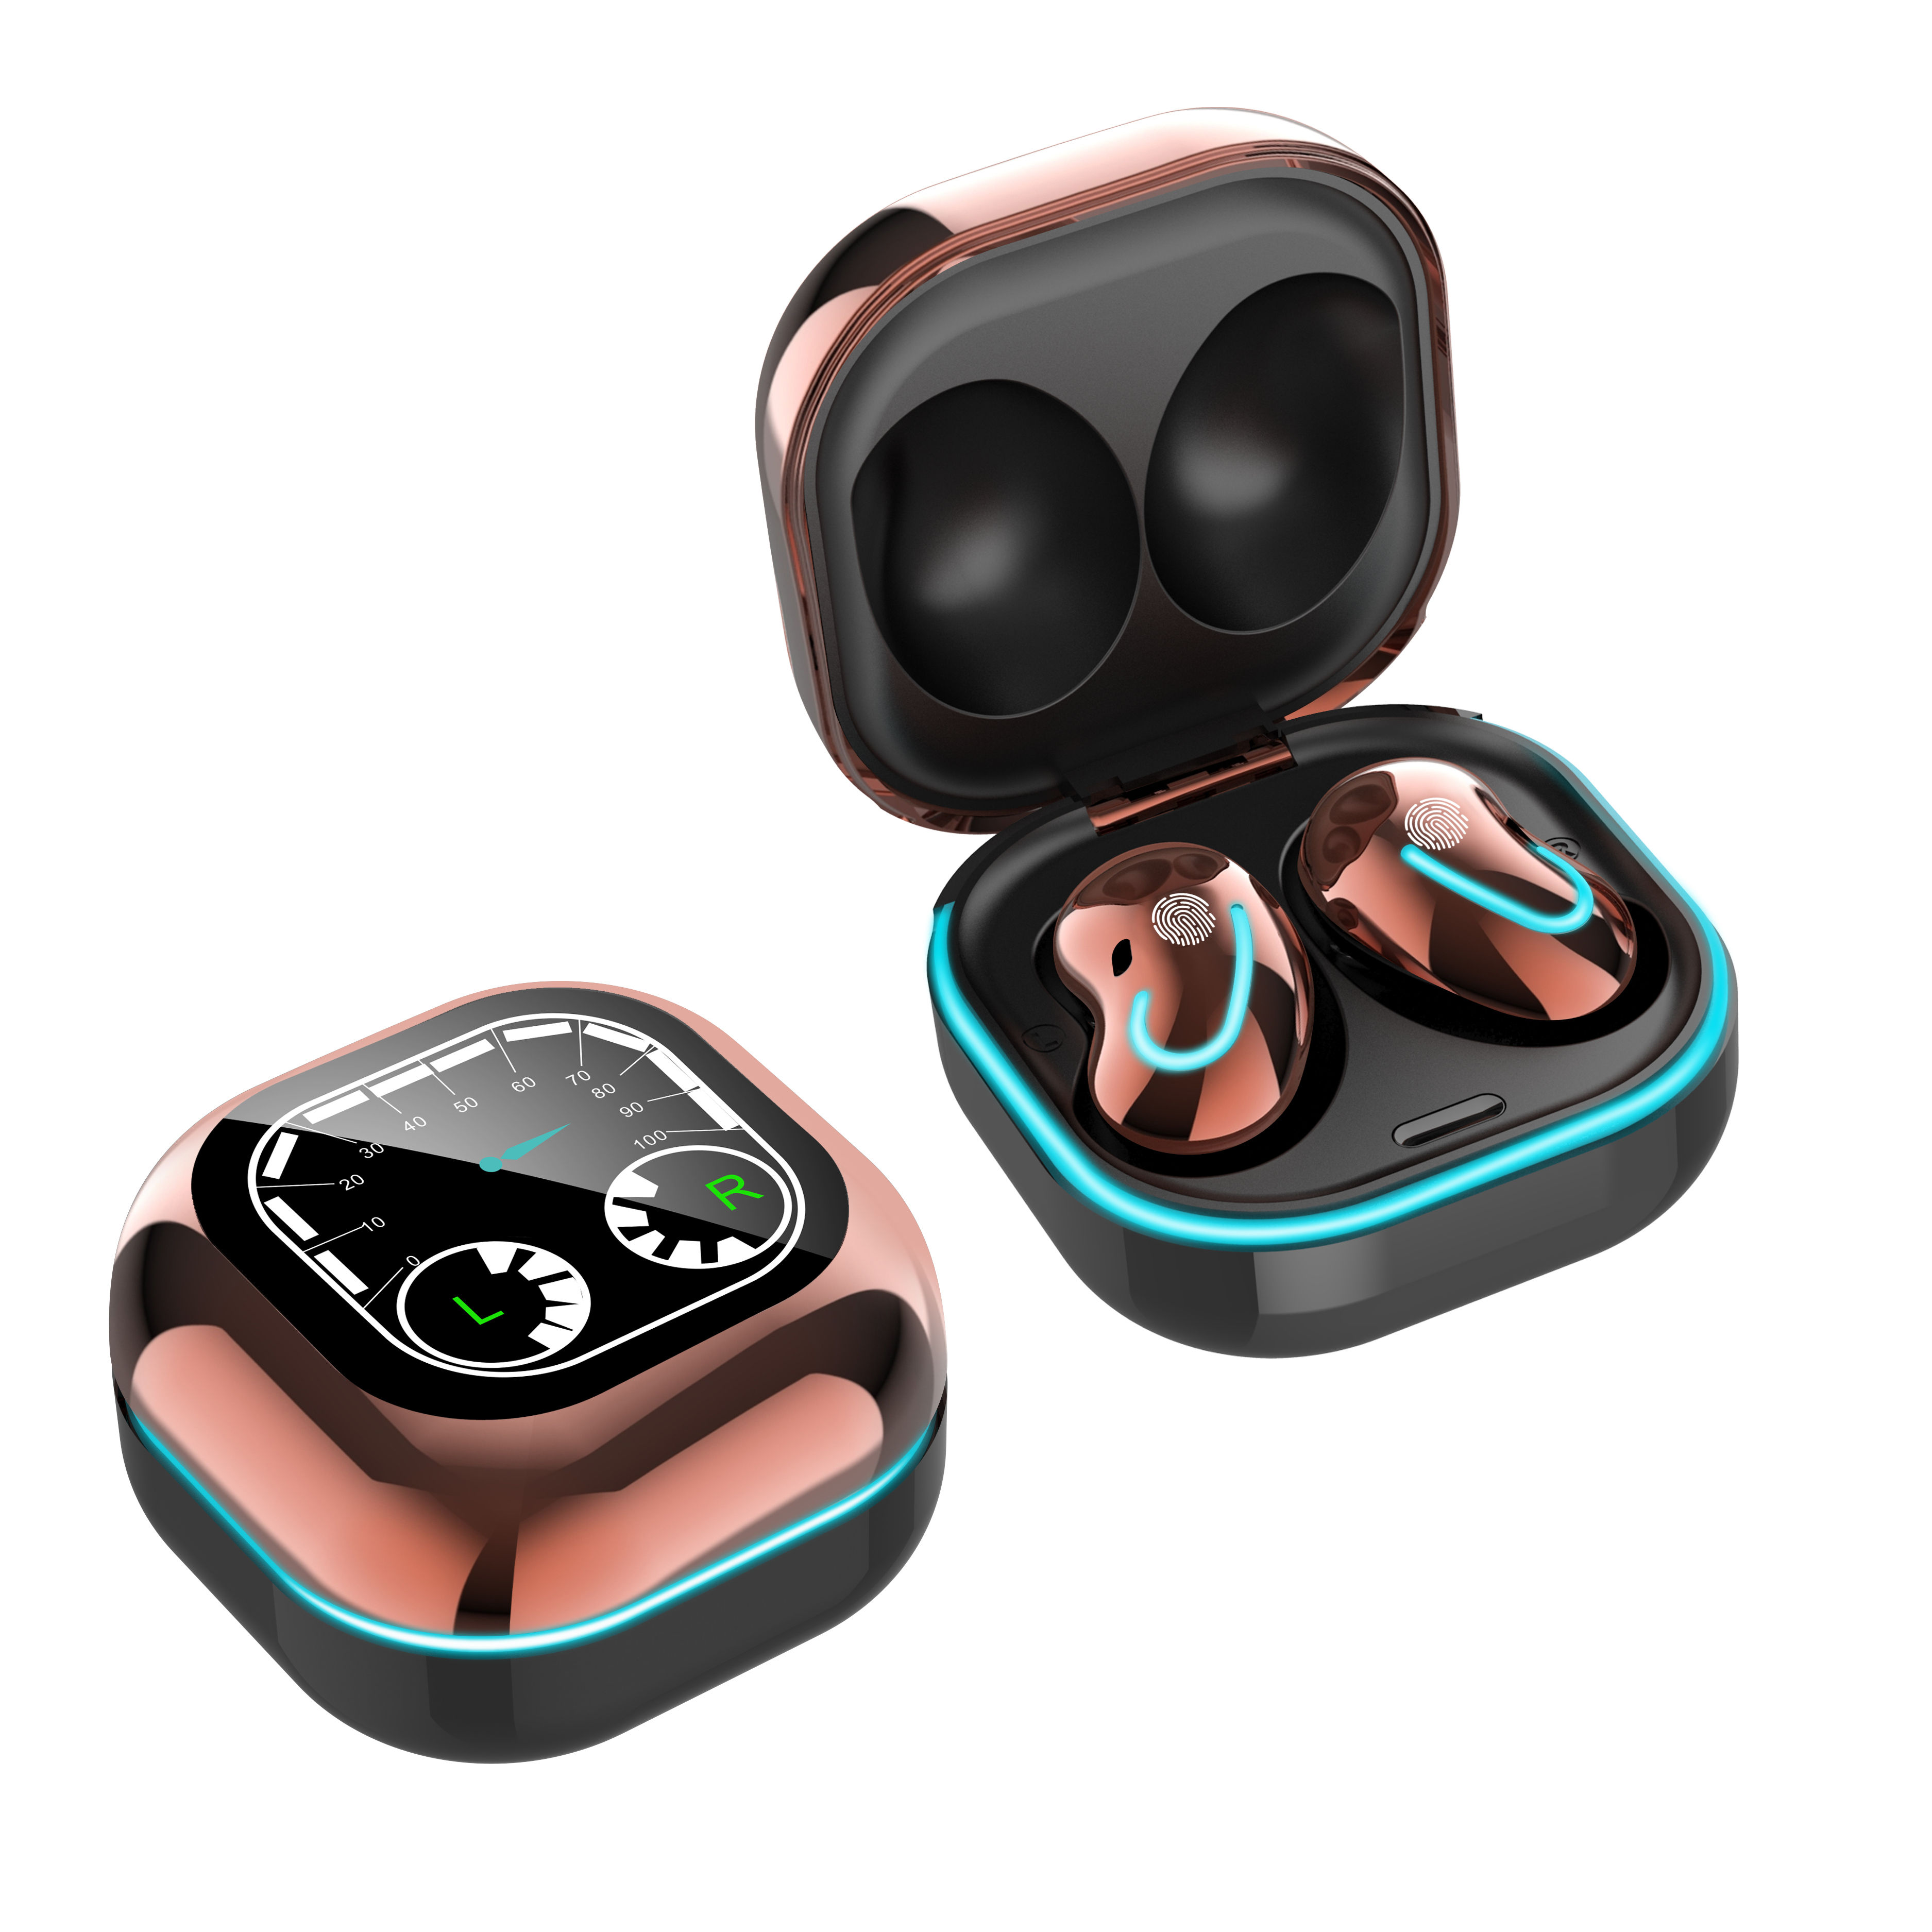 <span class=keywords><strong>Fabriek</strong></span> Koop S6 Se Mini Bt Intelligente Led Power Display True Draadloze Hoofdtelefoon Headsets Met Metalen Opladen Case